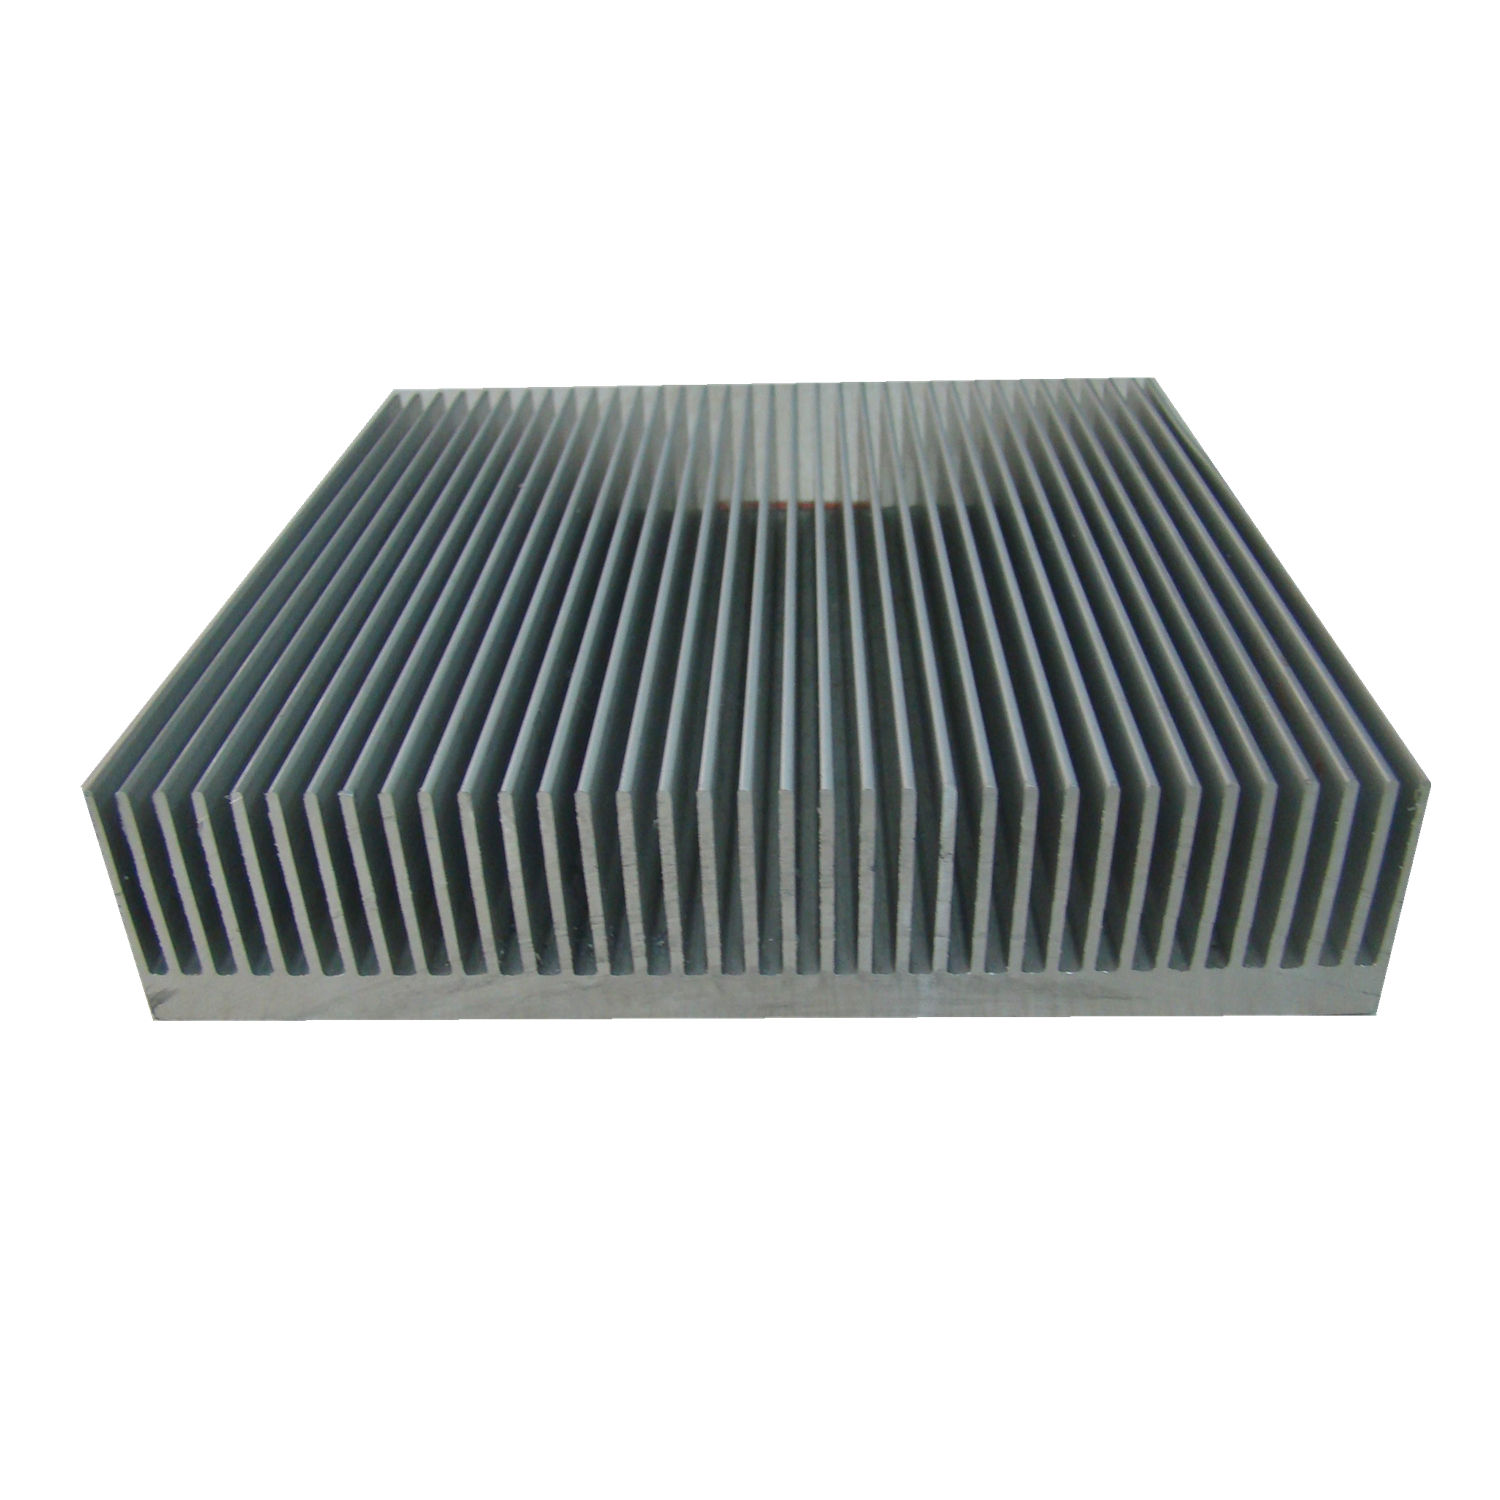 High Density Extrusion Heat Sink Shapes/ Profiles Factory Price Aluminum Extrusion 6061 6063 T5 Aluminum T - Profile Is Alloy